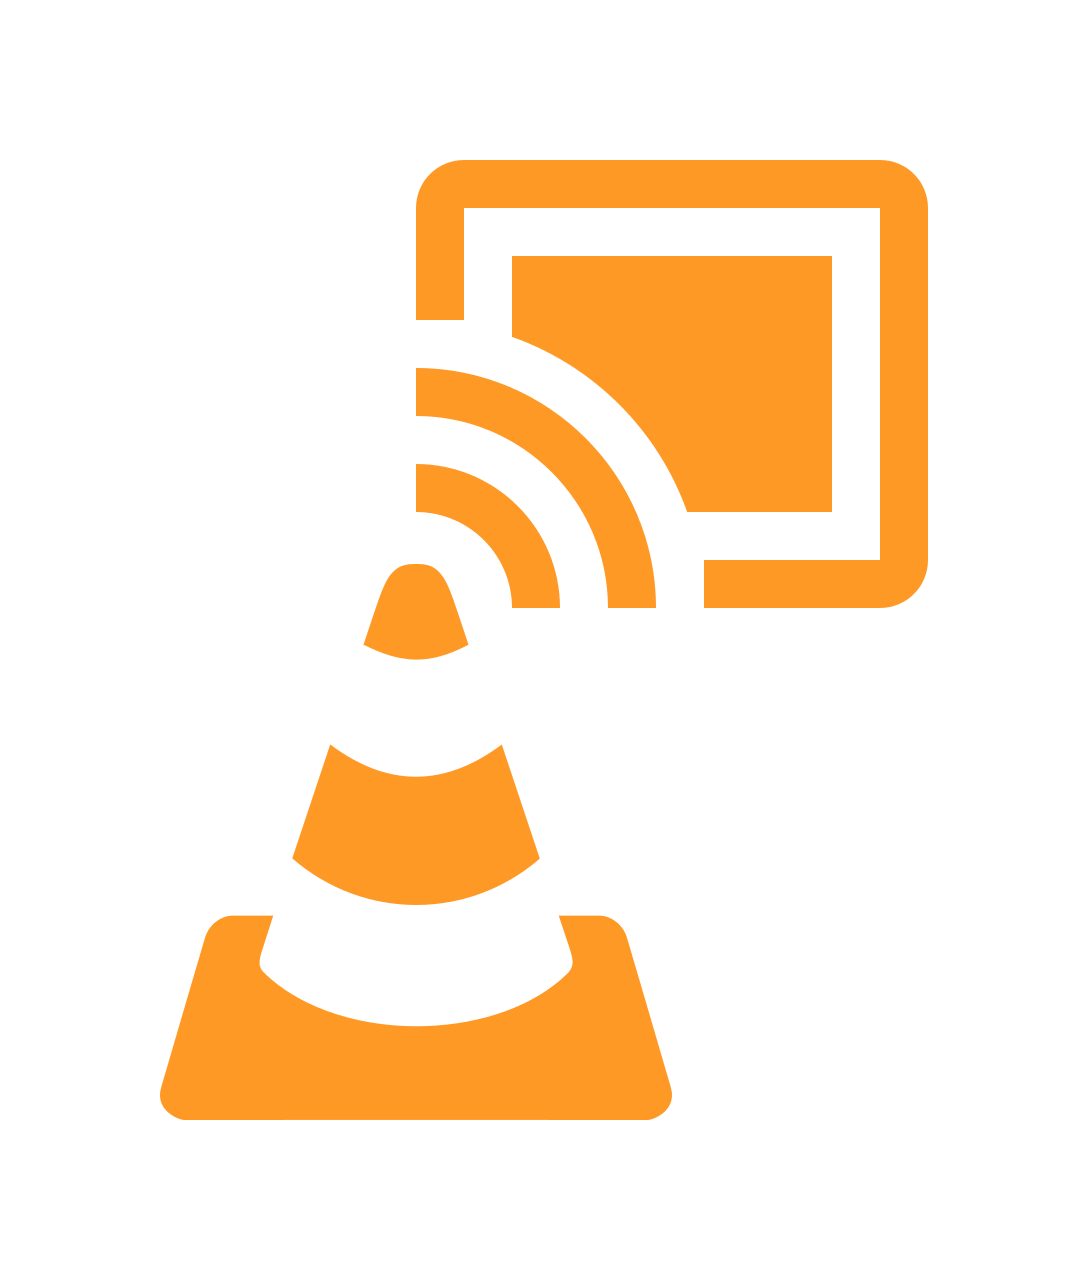 vlc-android/res/drawable-mdpi/renderer_background_cone.png